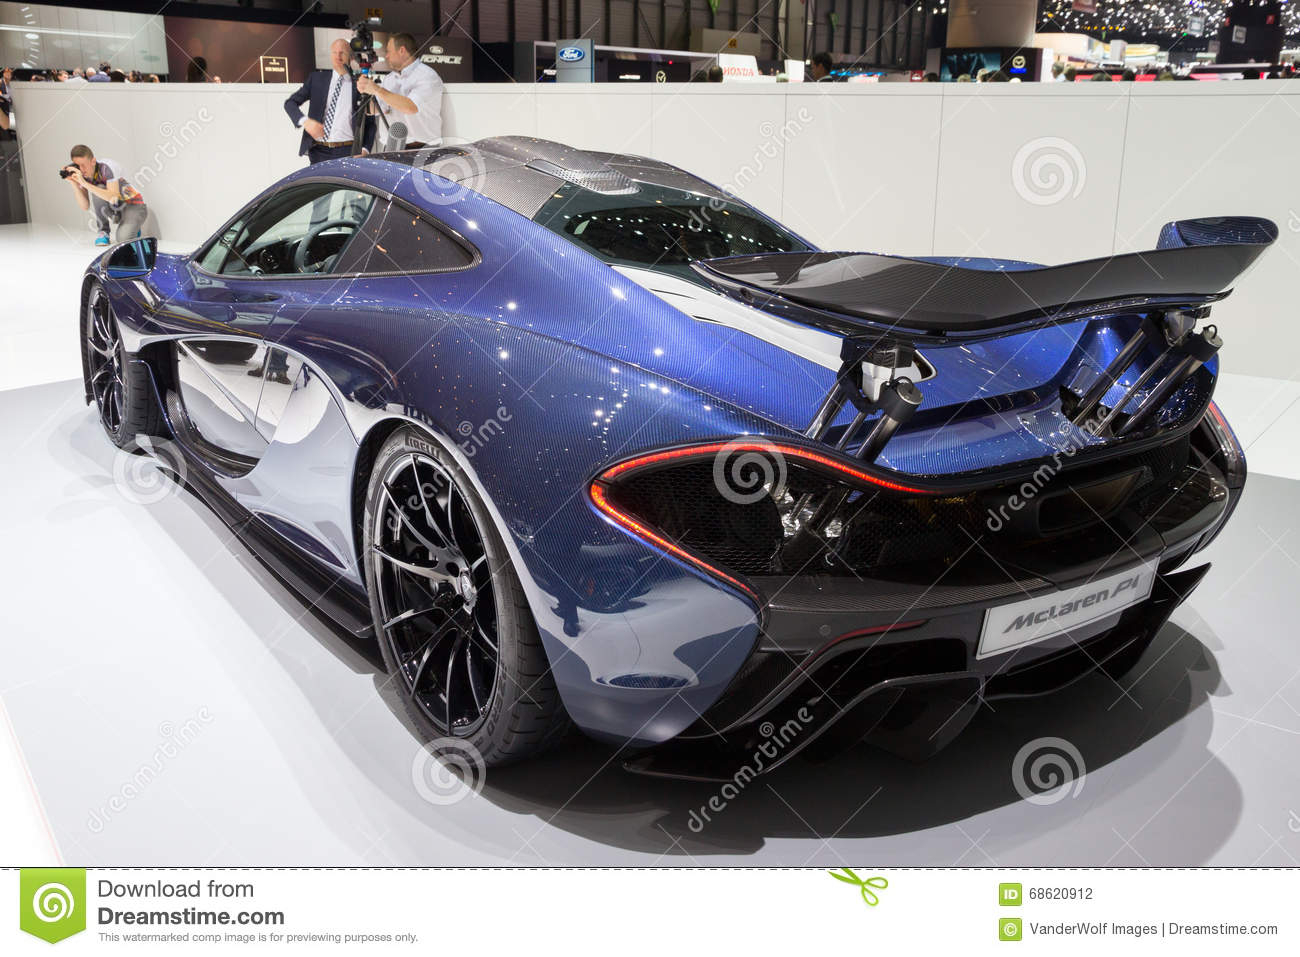 mclaren p1 plug in hybrid sports car editorial photography image 68620912. Black Bedroom Furniture Sets. Home Design Ideas